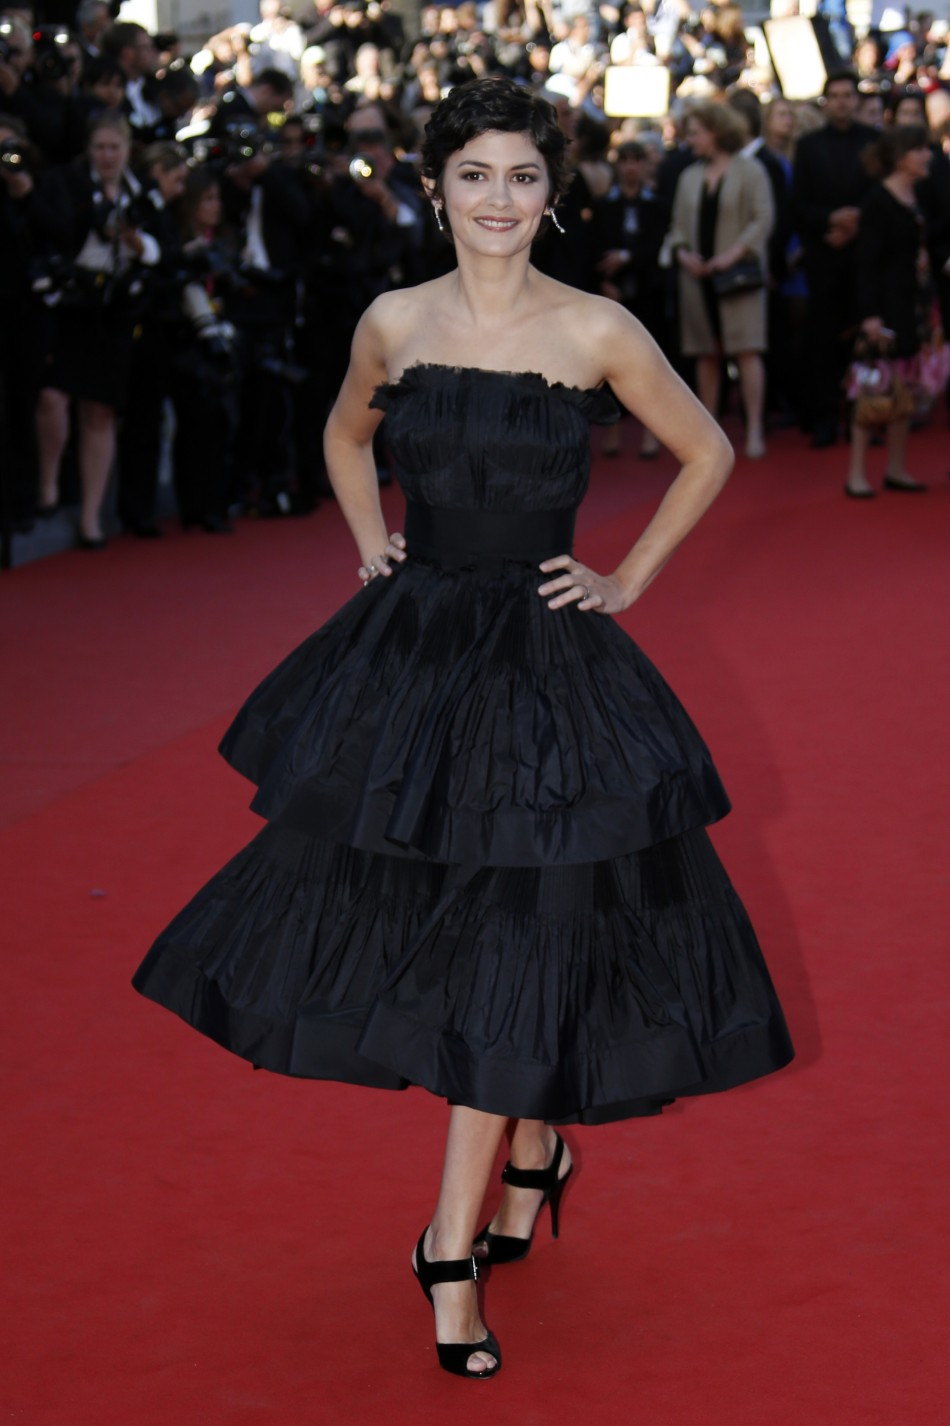 Mistress of Ceremony actress Audrey Tautou poses on the red carpet as she arrives for the screening of the film La Venus a la Fourrure Venus in Fur in competition during the 66th Cannes Film Festival in Cannes May 25, 2013.